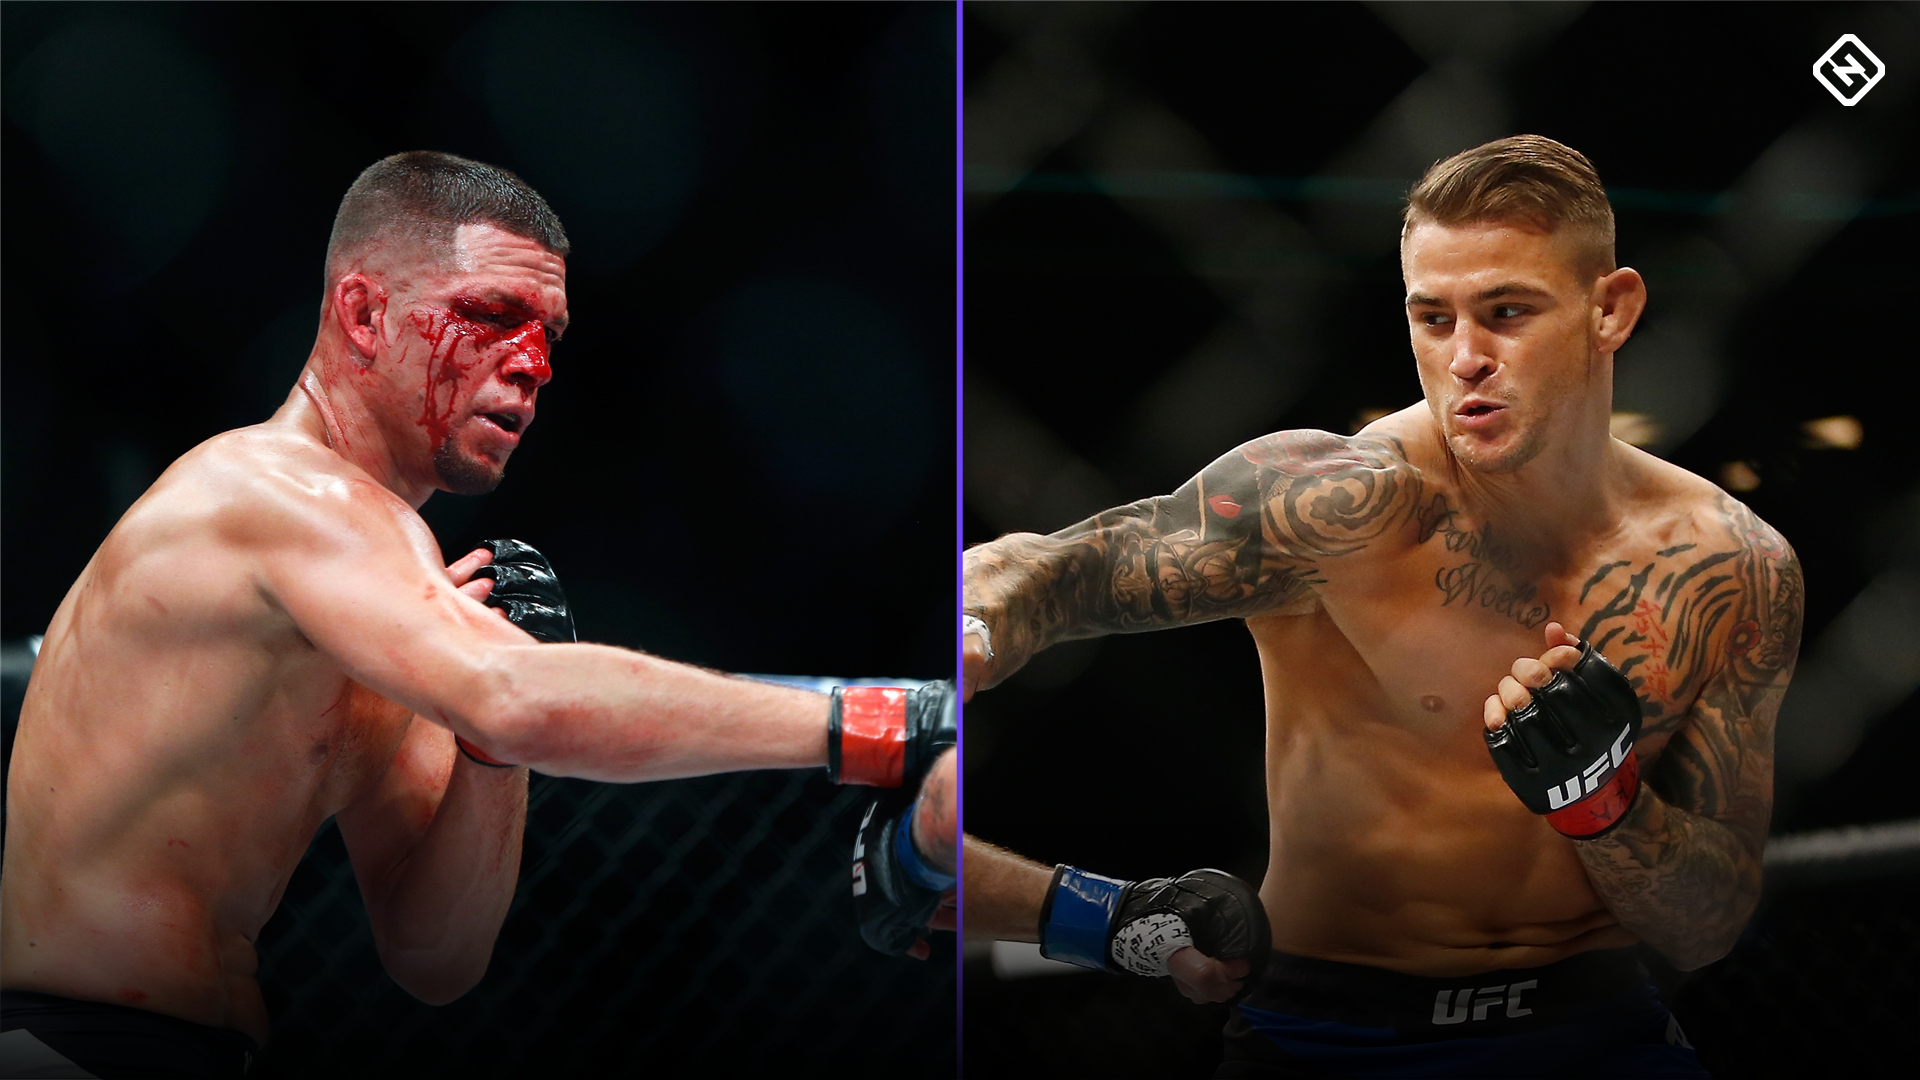 Nate Diaz set for Octagon return and to co-headline UFC 230